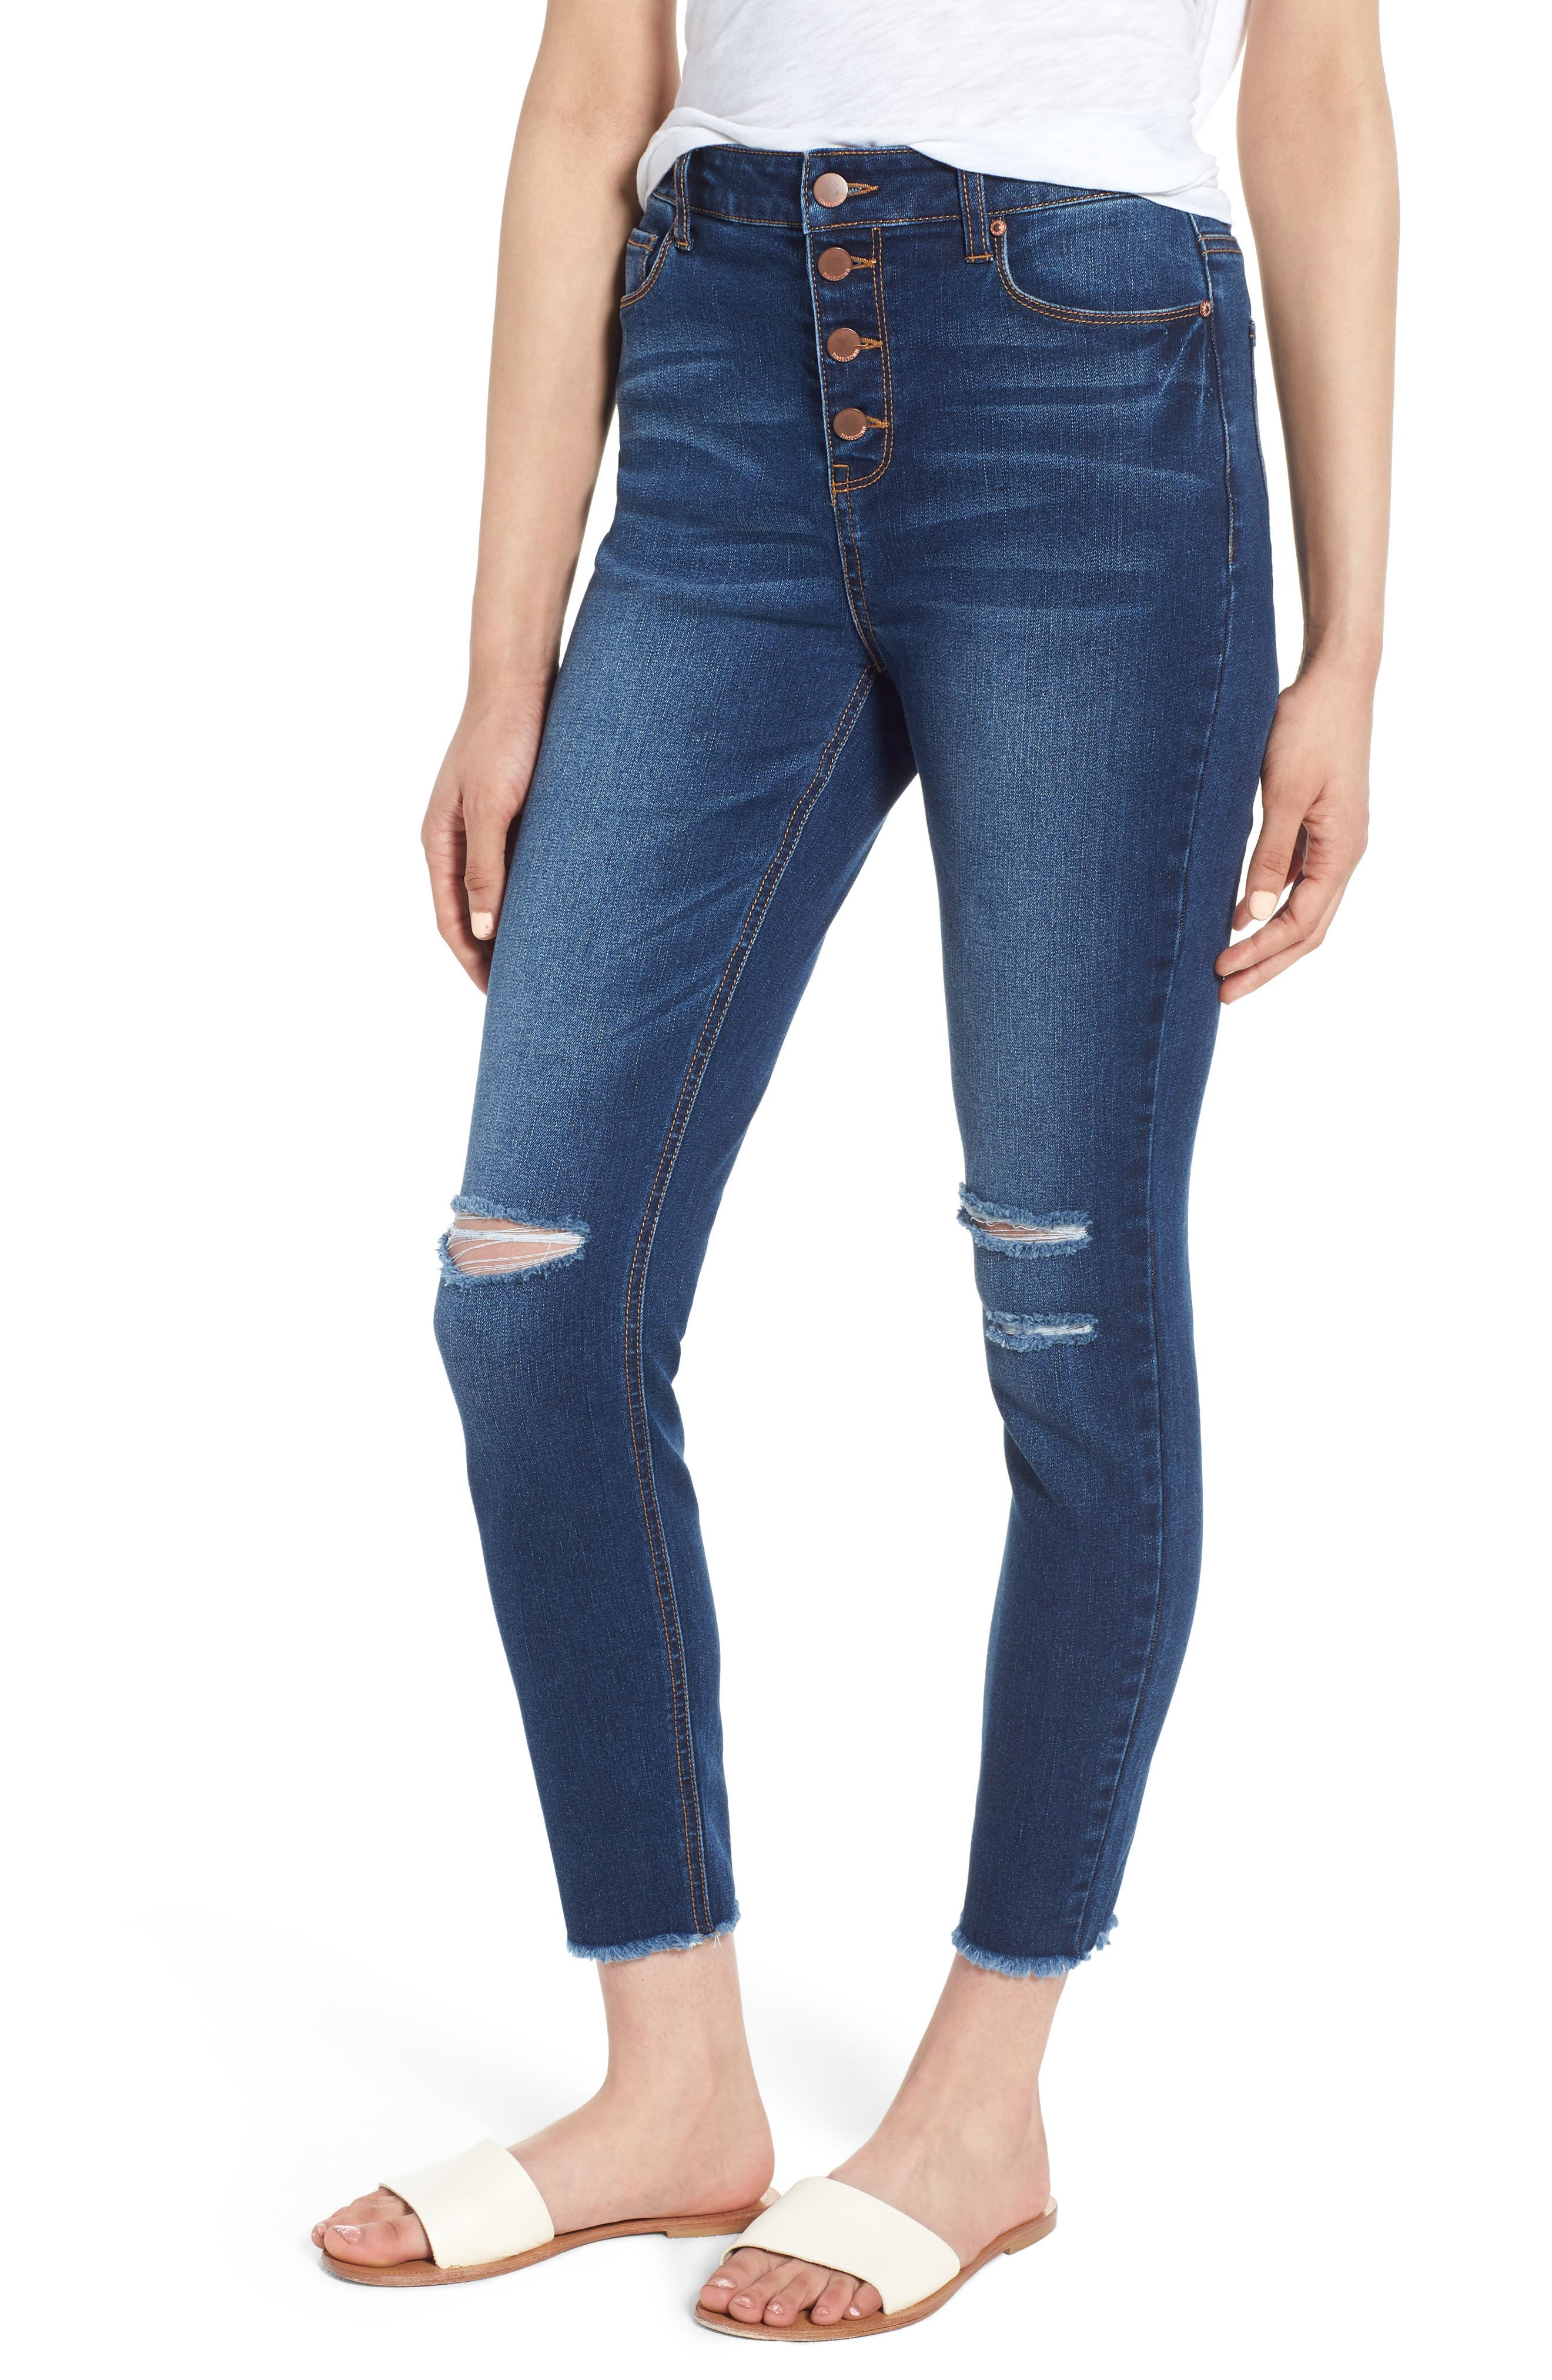 TINSEL, Ripped High Waist Ankle Skinny Jeans, Main thumbnail 1, color, DARK WASH